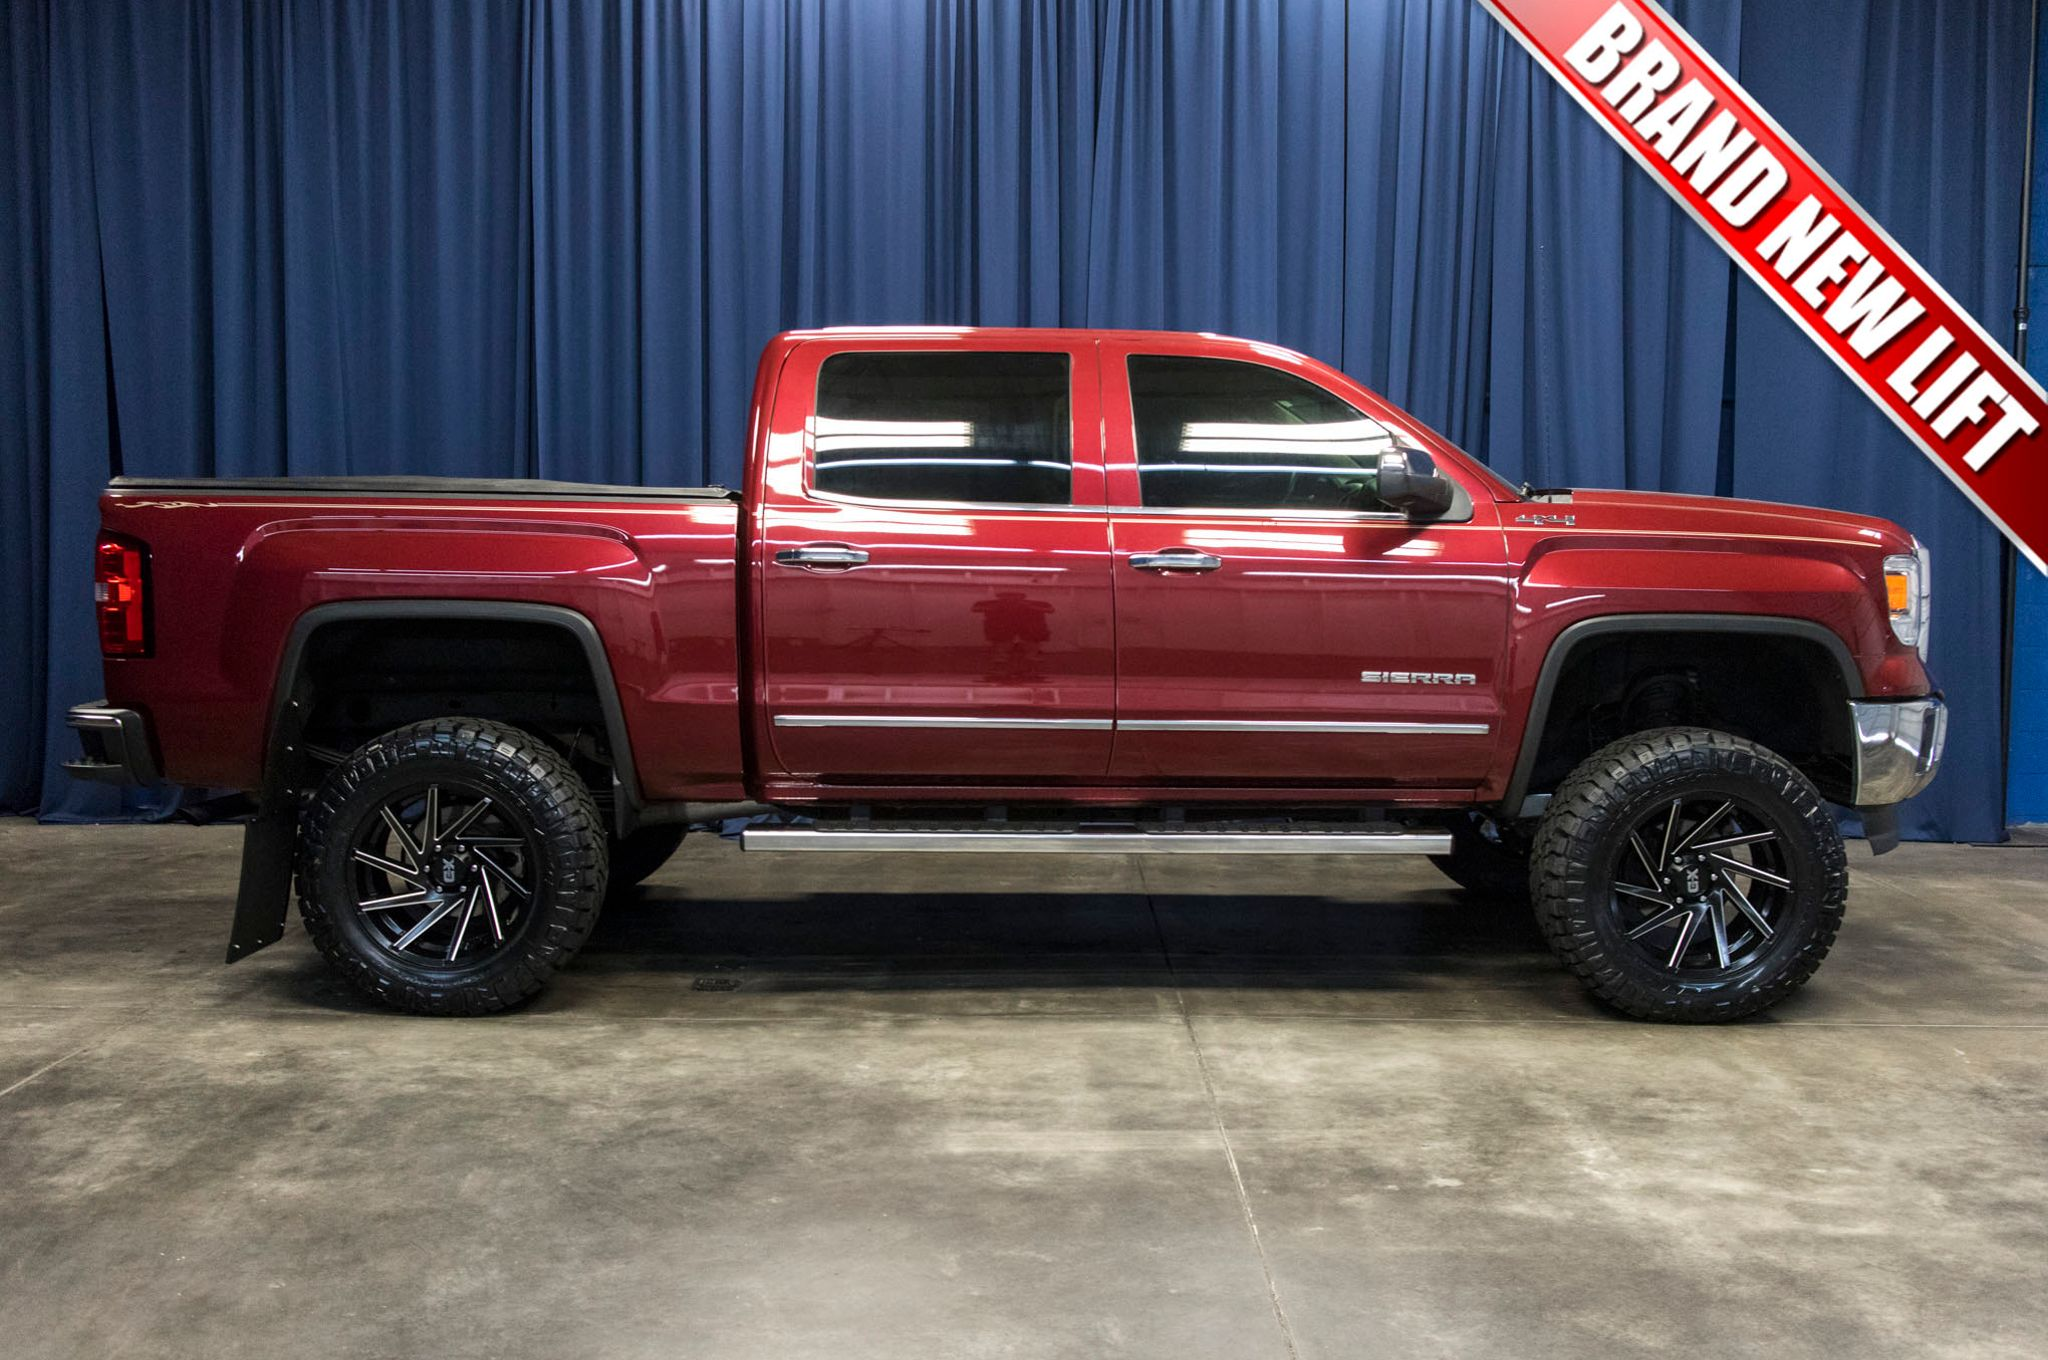 Used Lifted 2014 Gmc Sierra 1500 Slt 4x4 Truck For Sale 44585